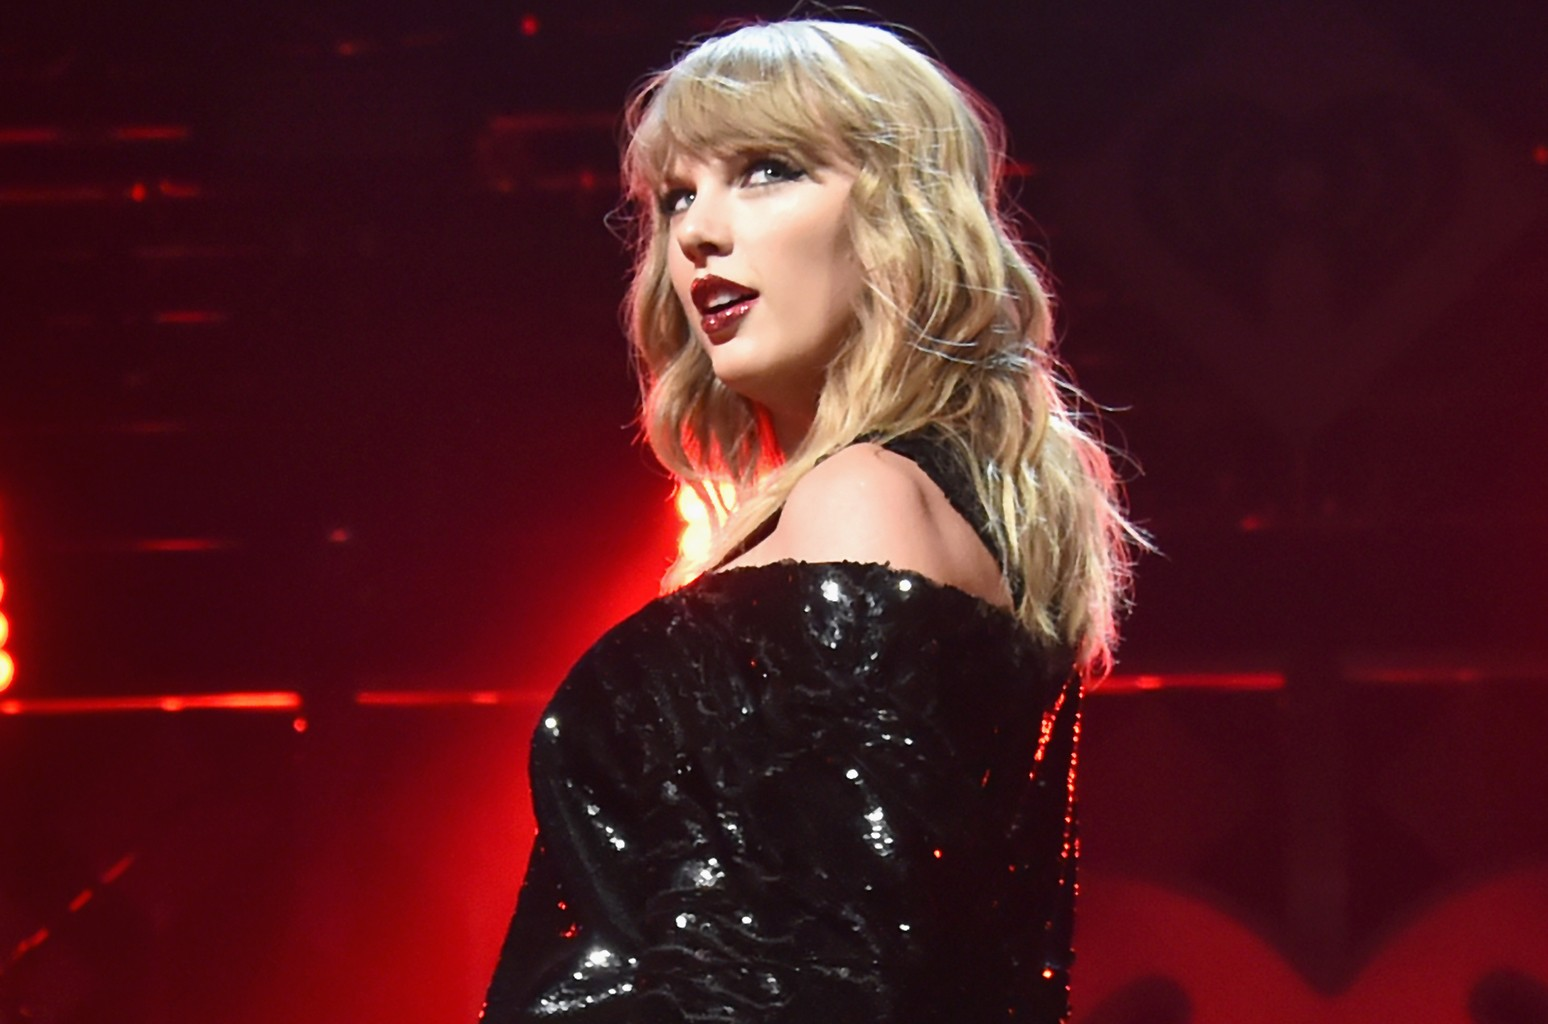 Taylor Swift Celebrates Countdown To Reputation Stadium Tour With Fun Facts Billboard